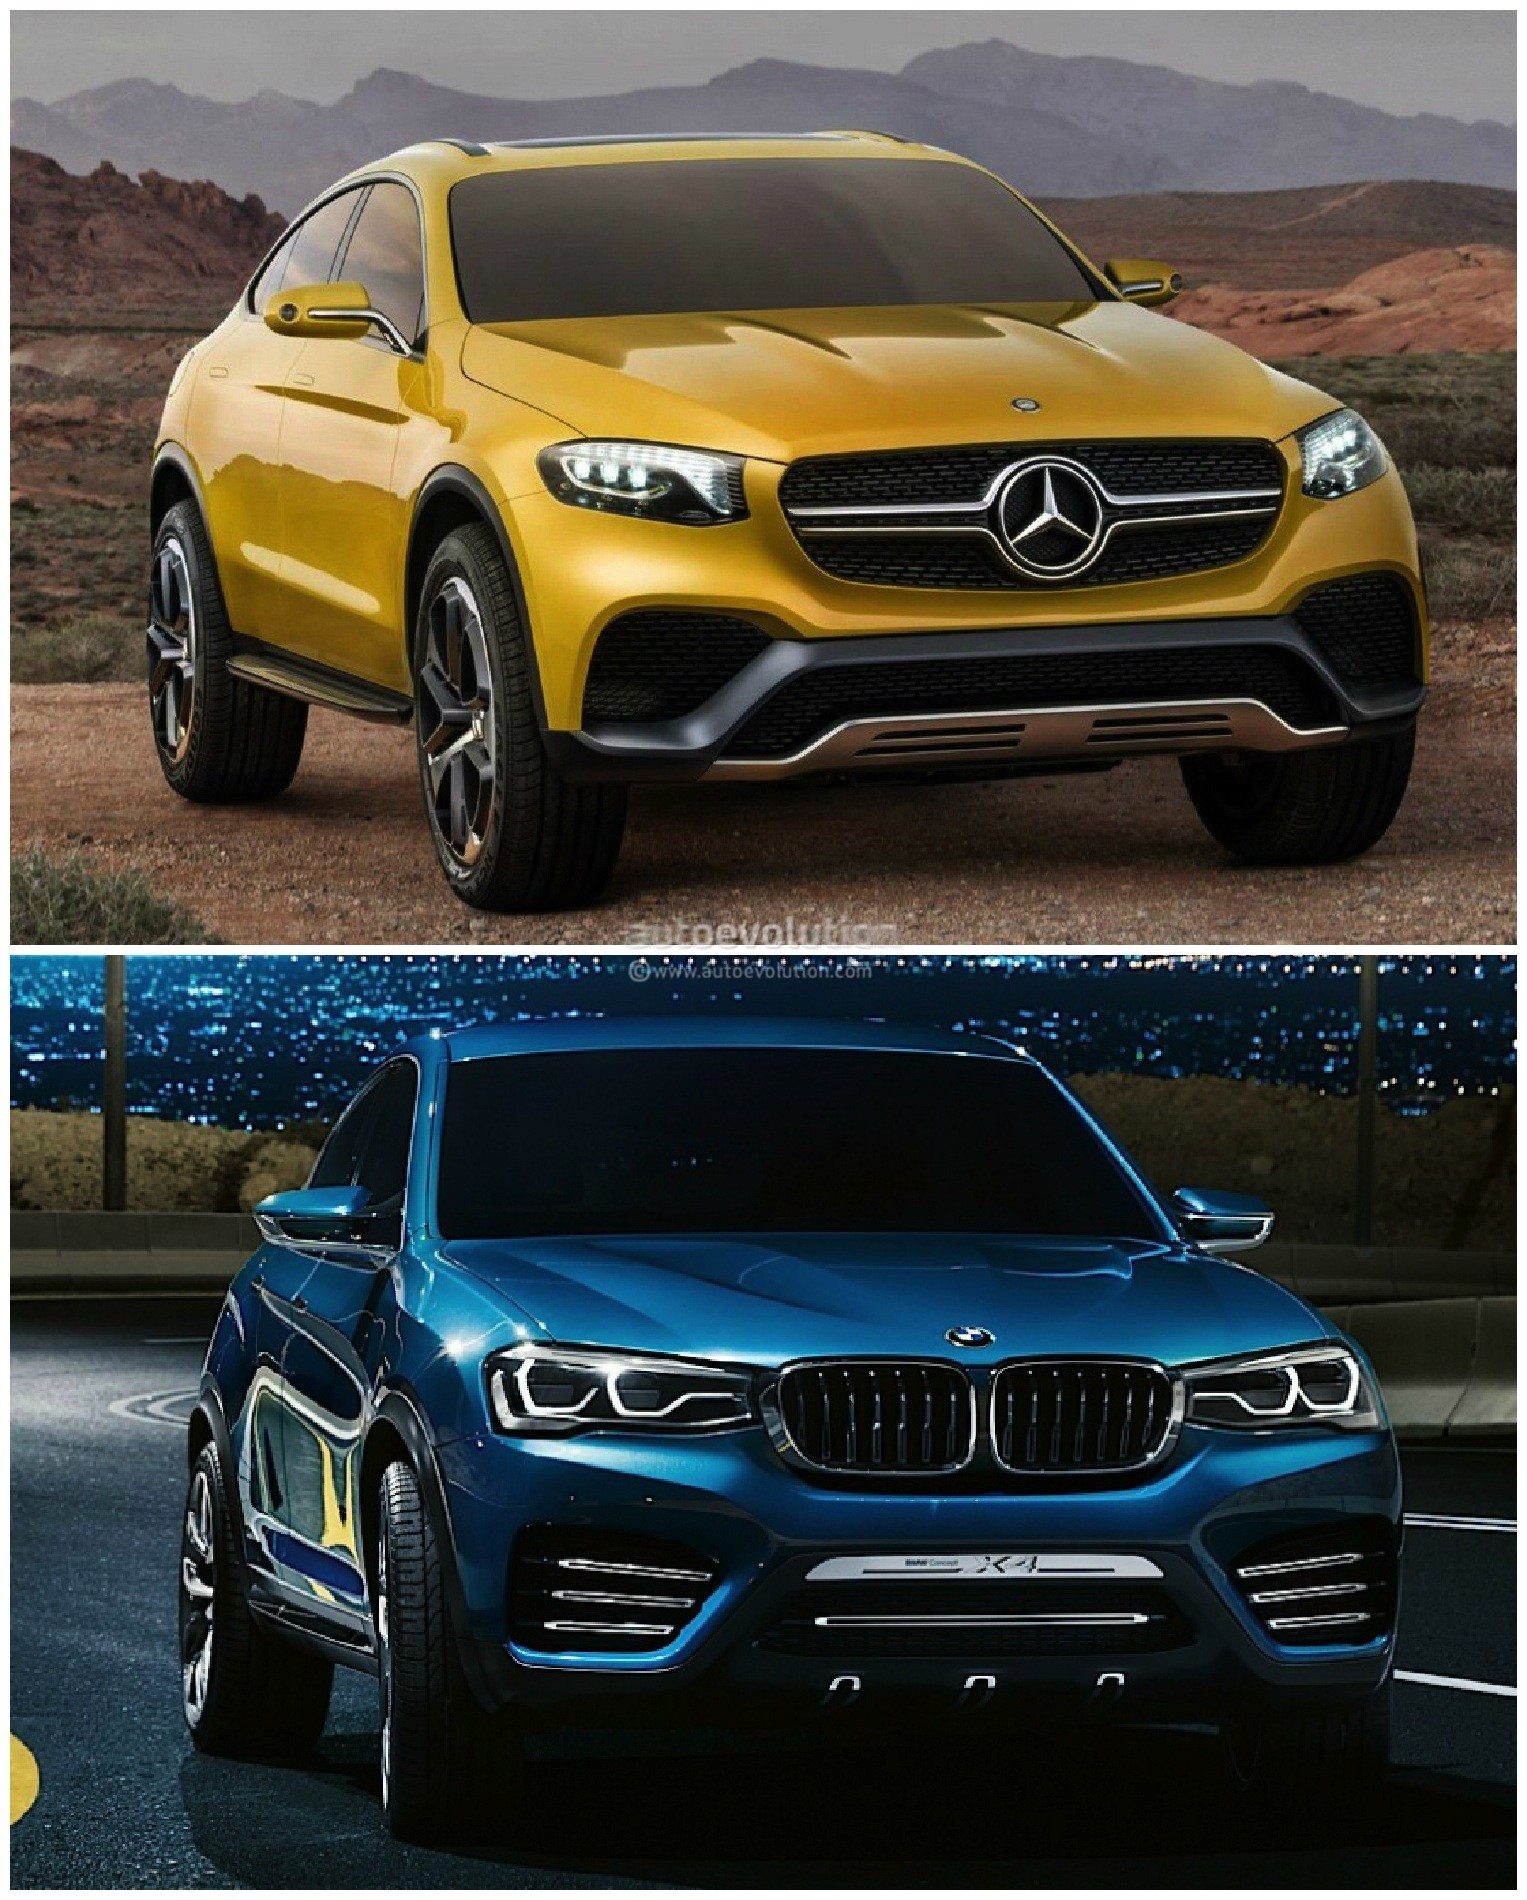 Mercedes Glc Coupe Vs Bmw X4 The Sports Activity Coupe